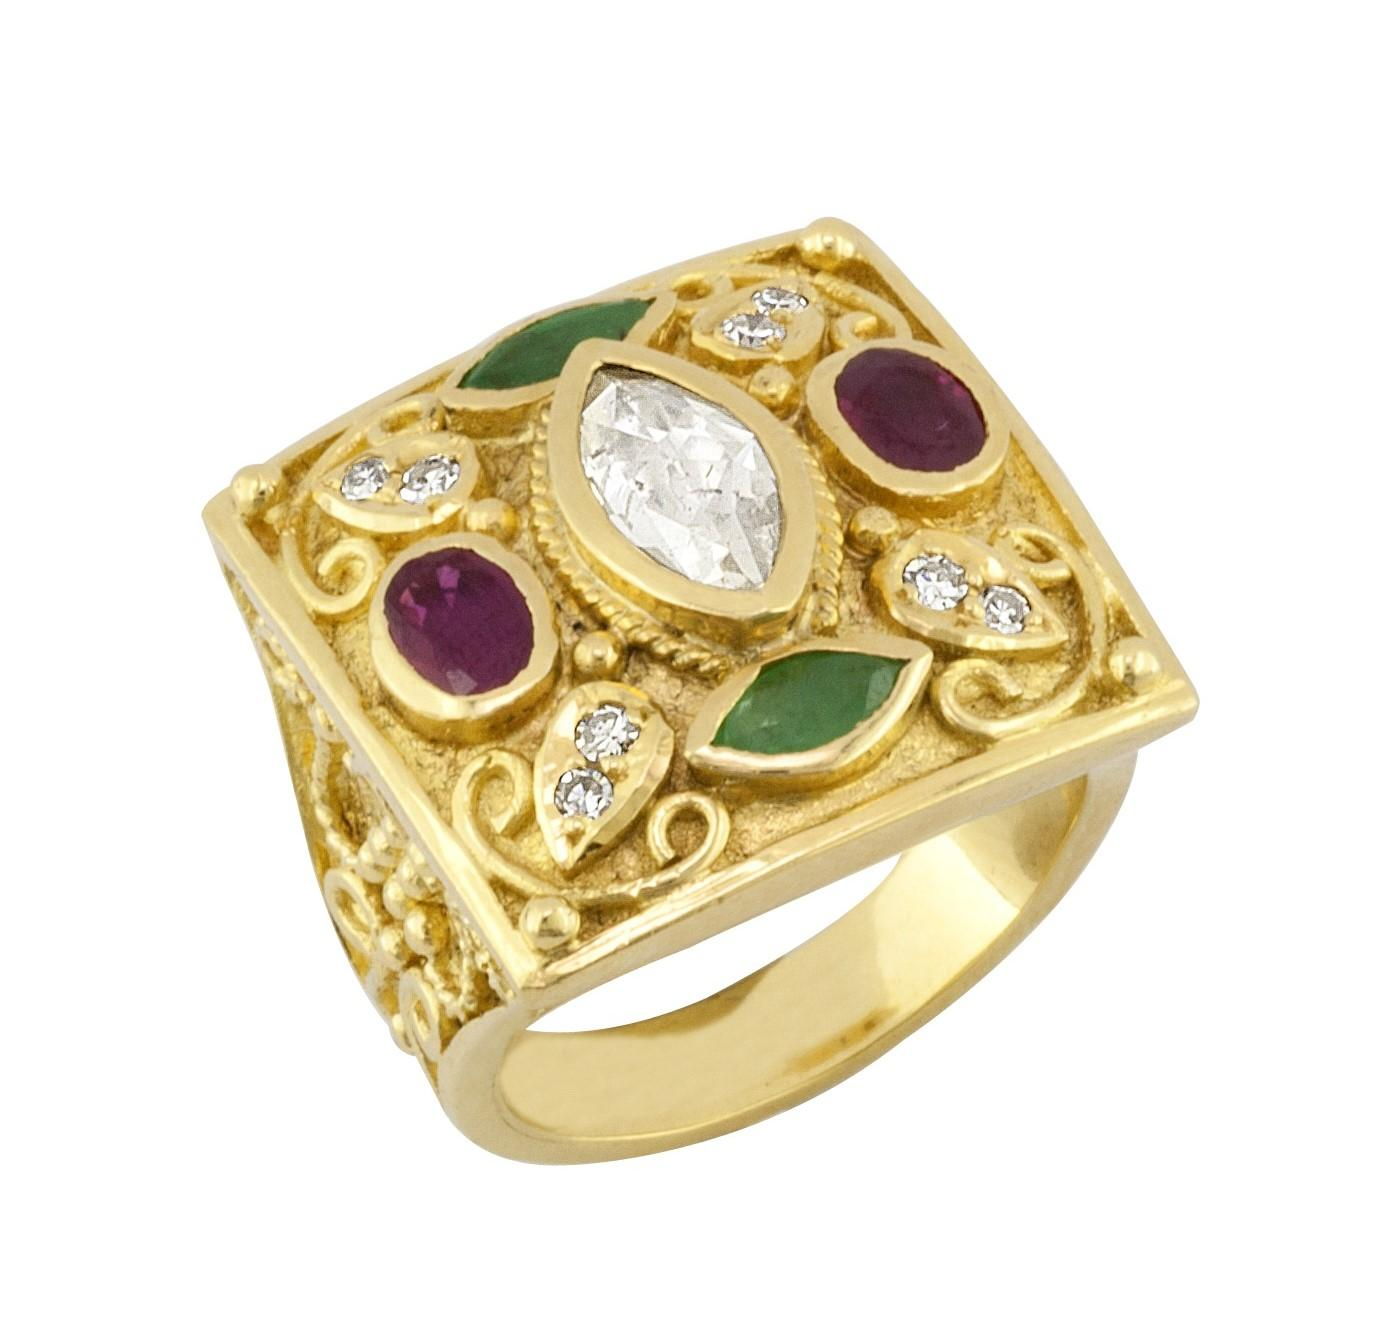 Georgios Collections 18 Karat Yellow Gold Diamond Ring With Emeralds and Rubies